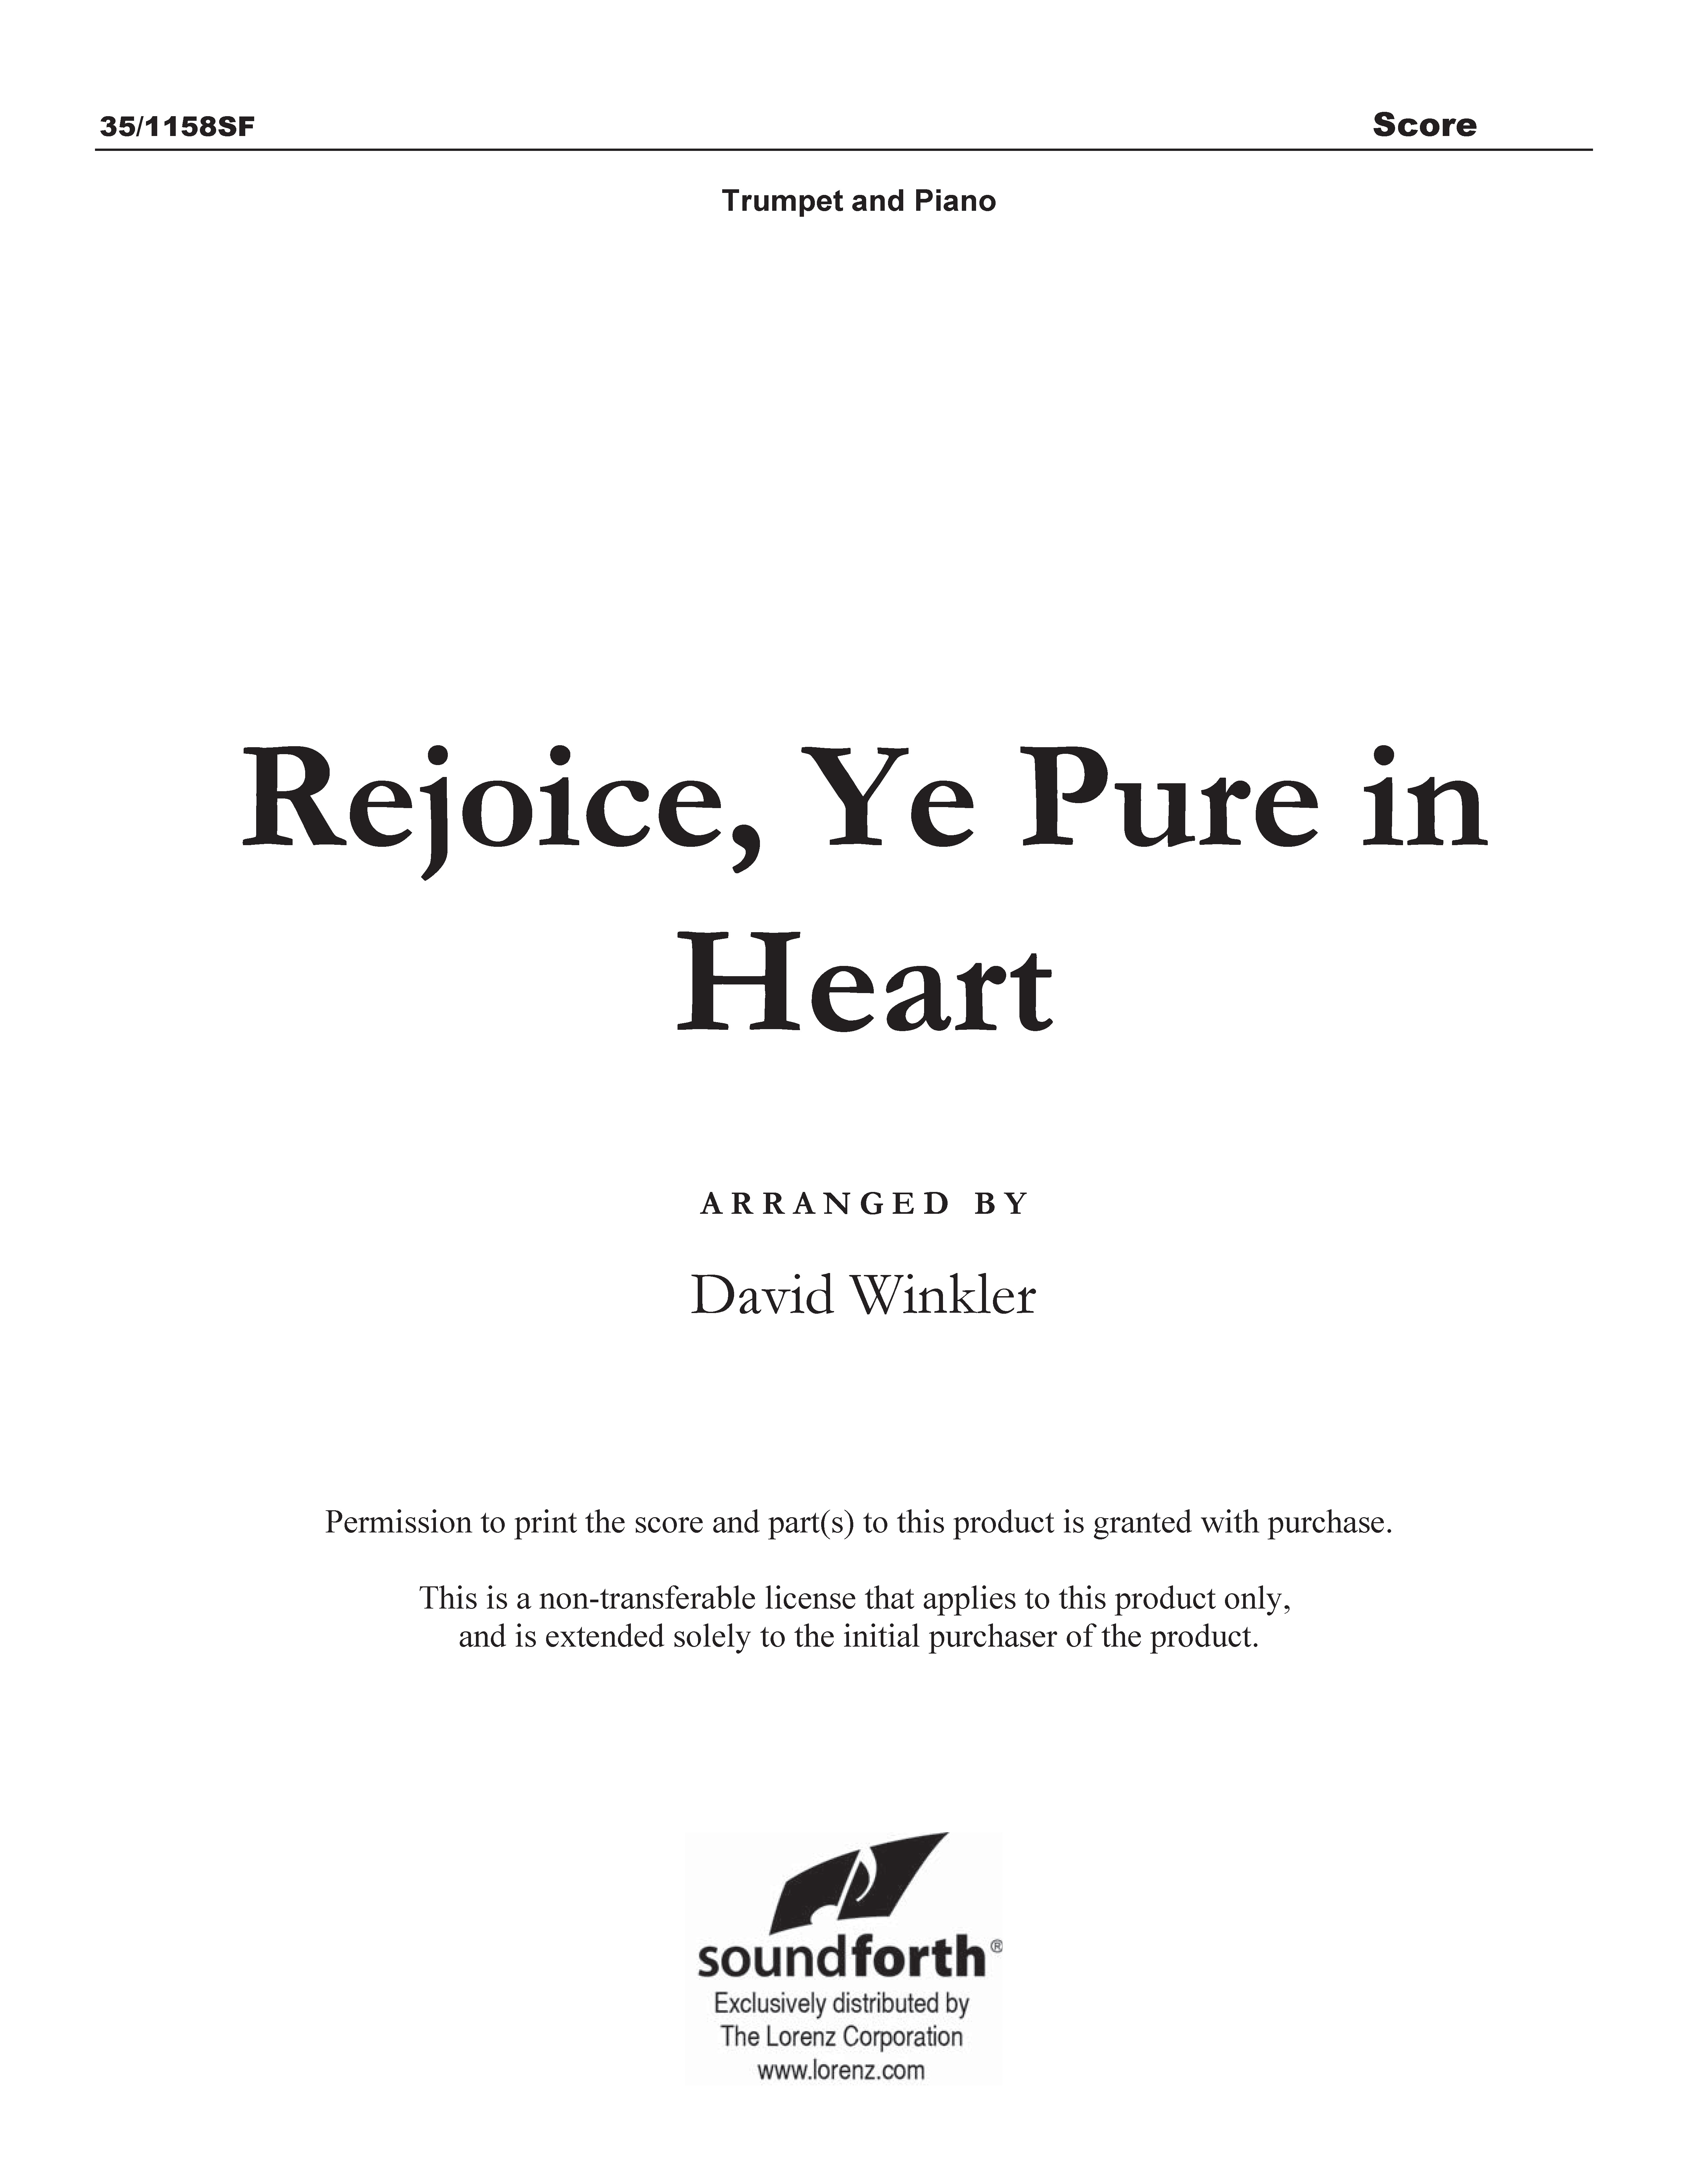 Rejoice, Ye Pure in Heart (Digital Delivery)